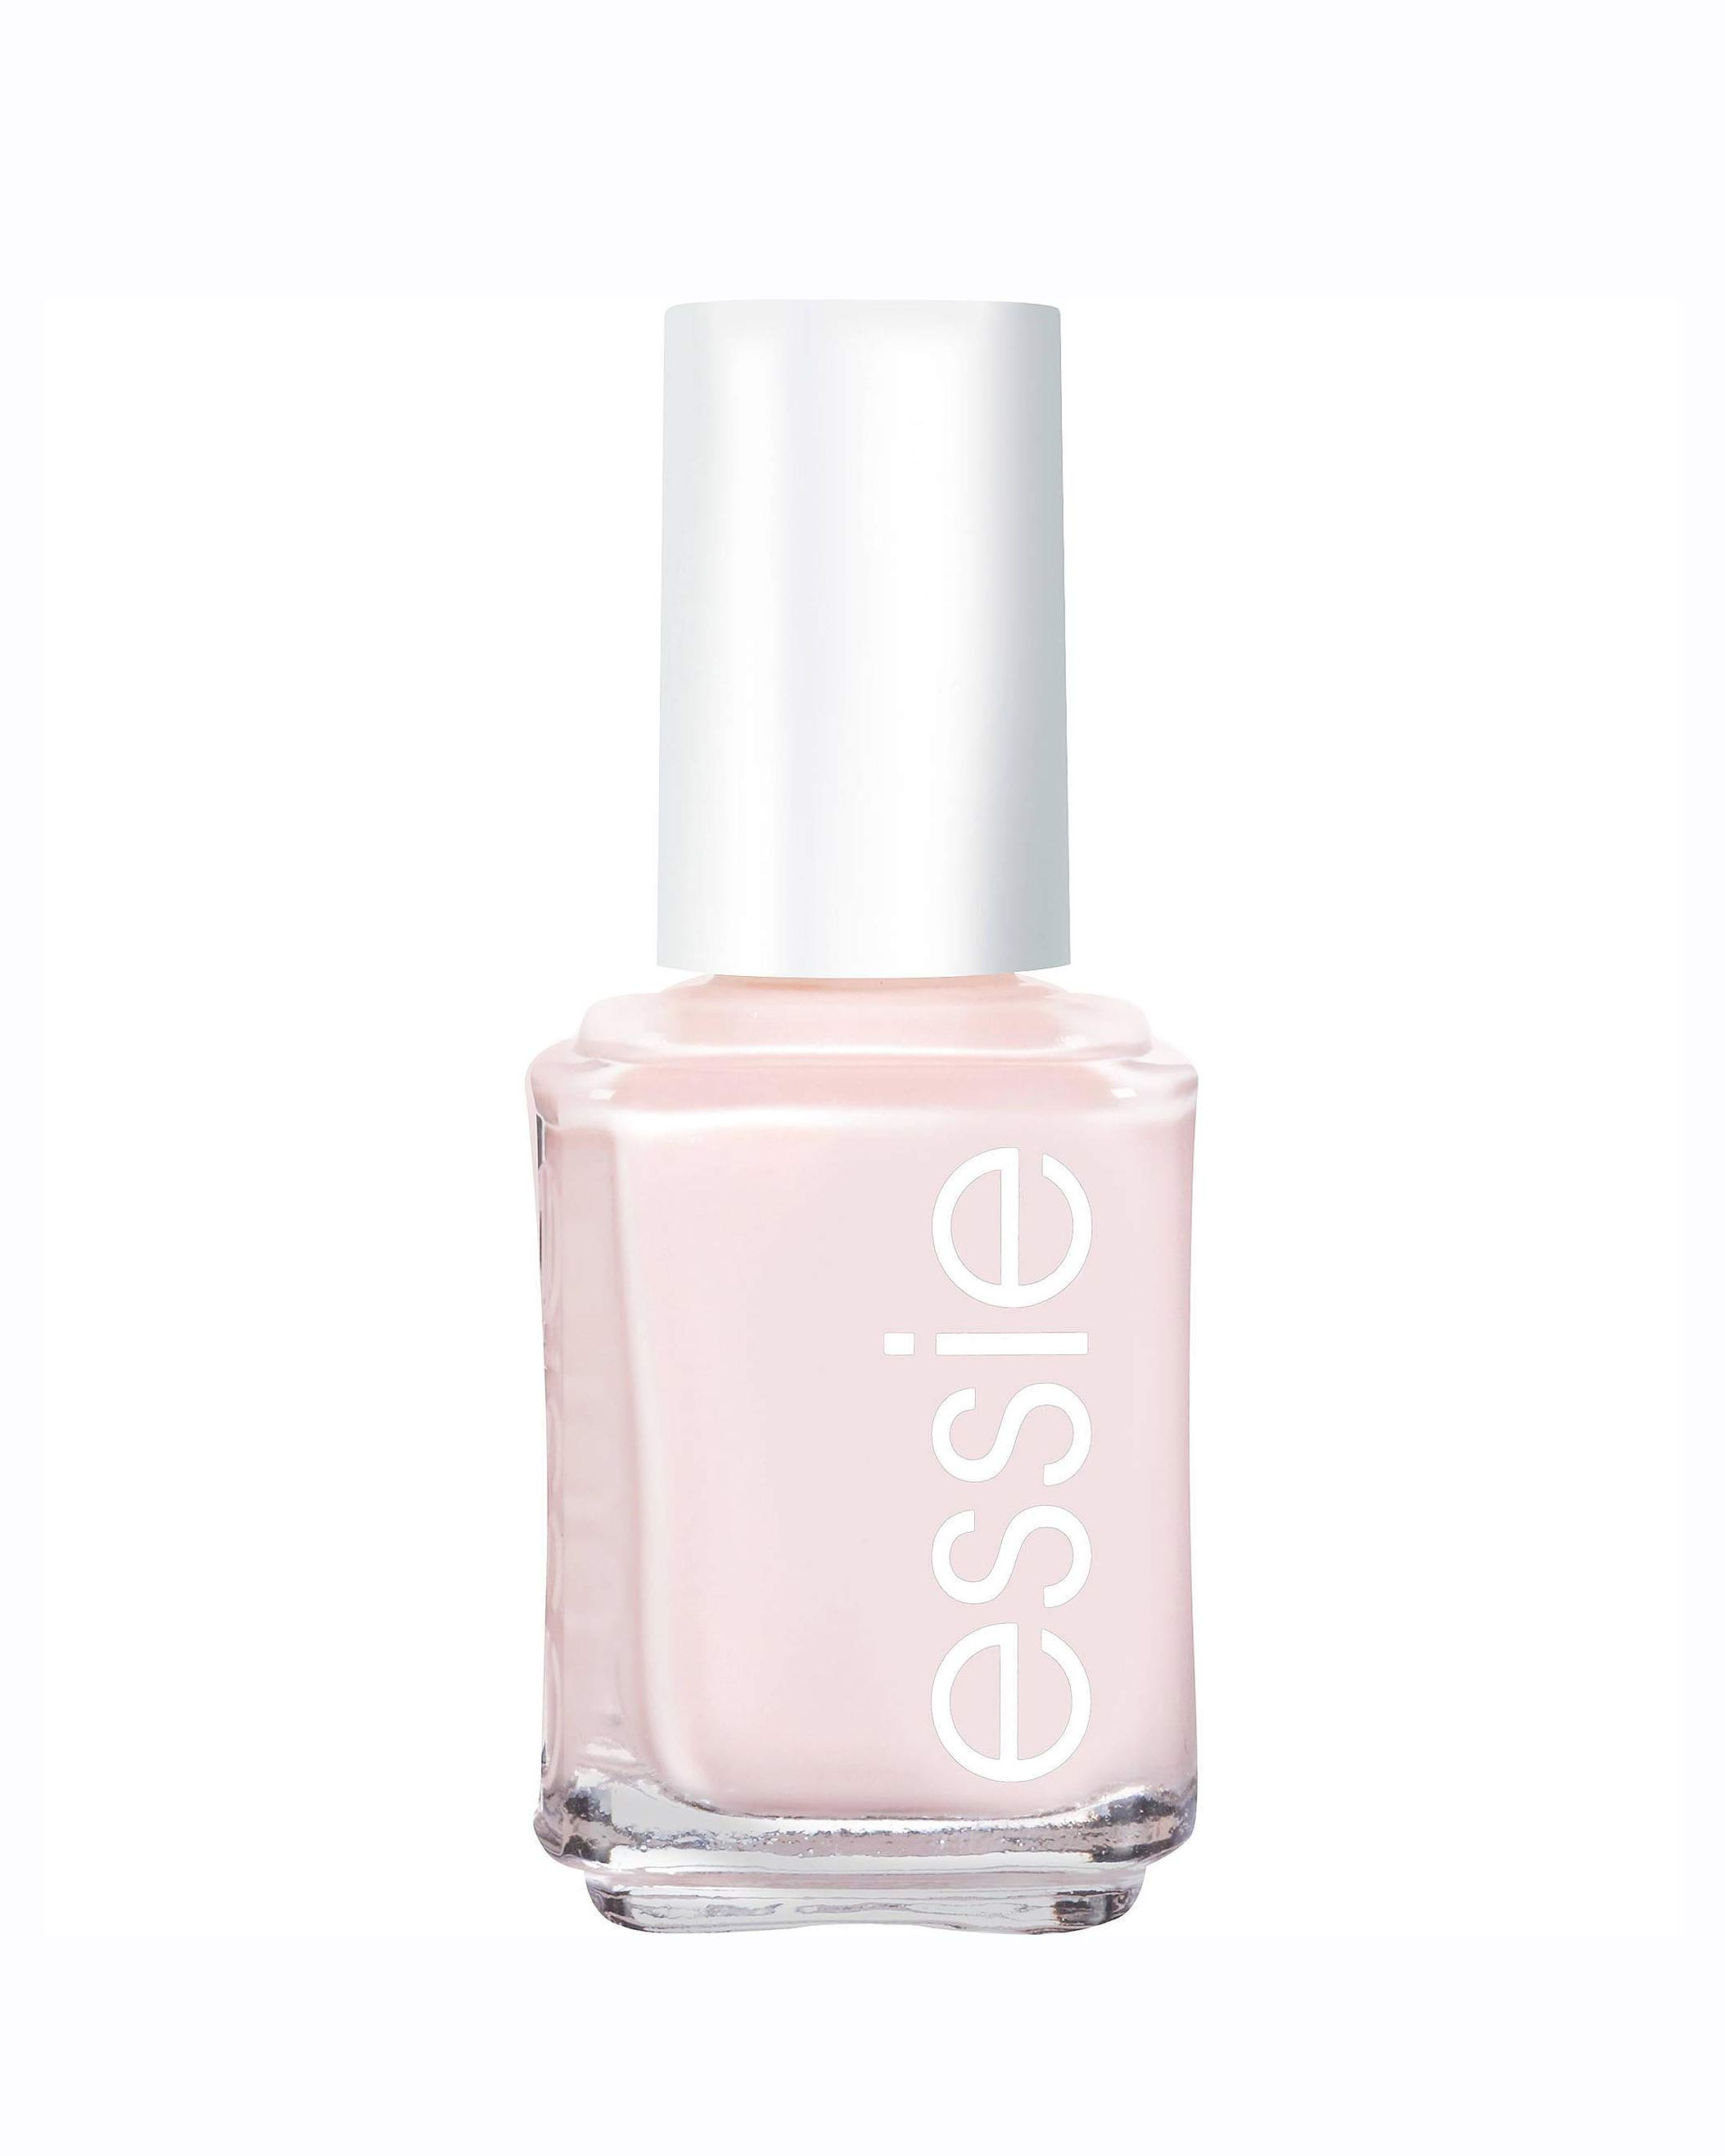 big-day-beauty-awards-essie-nail-polish-0216.jpg